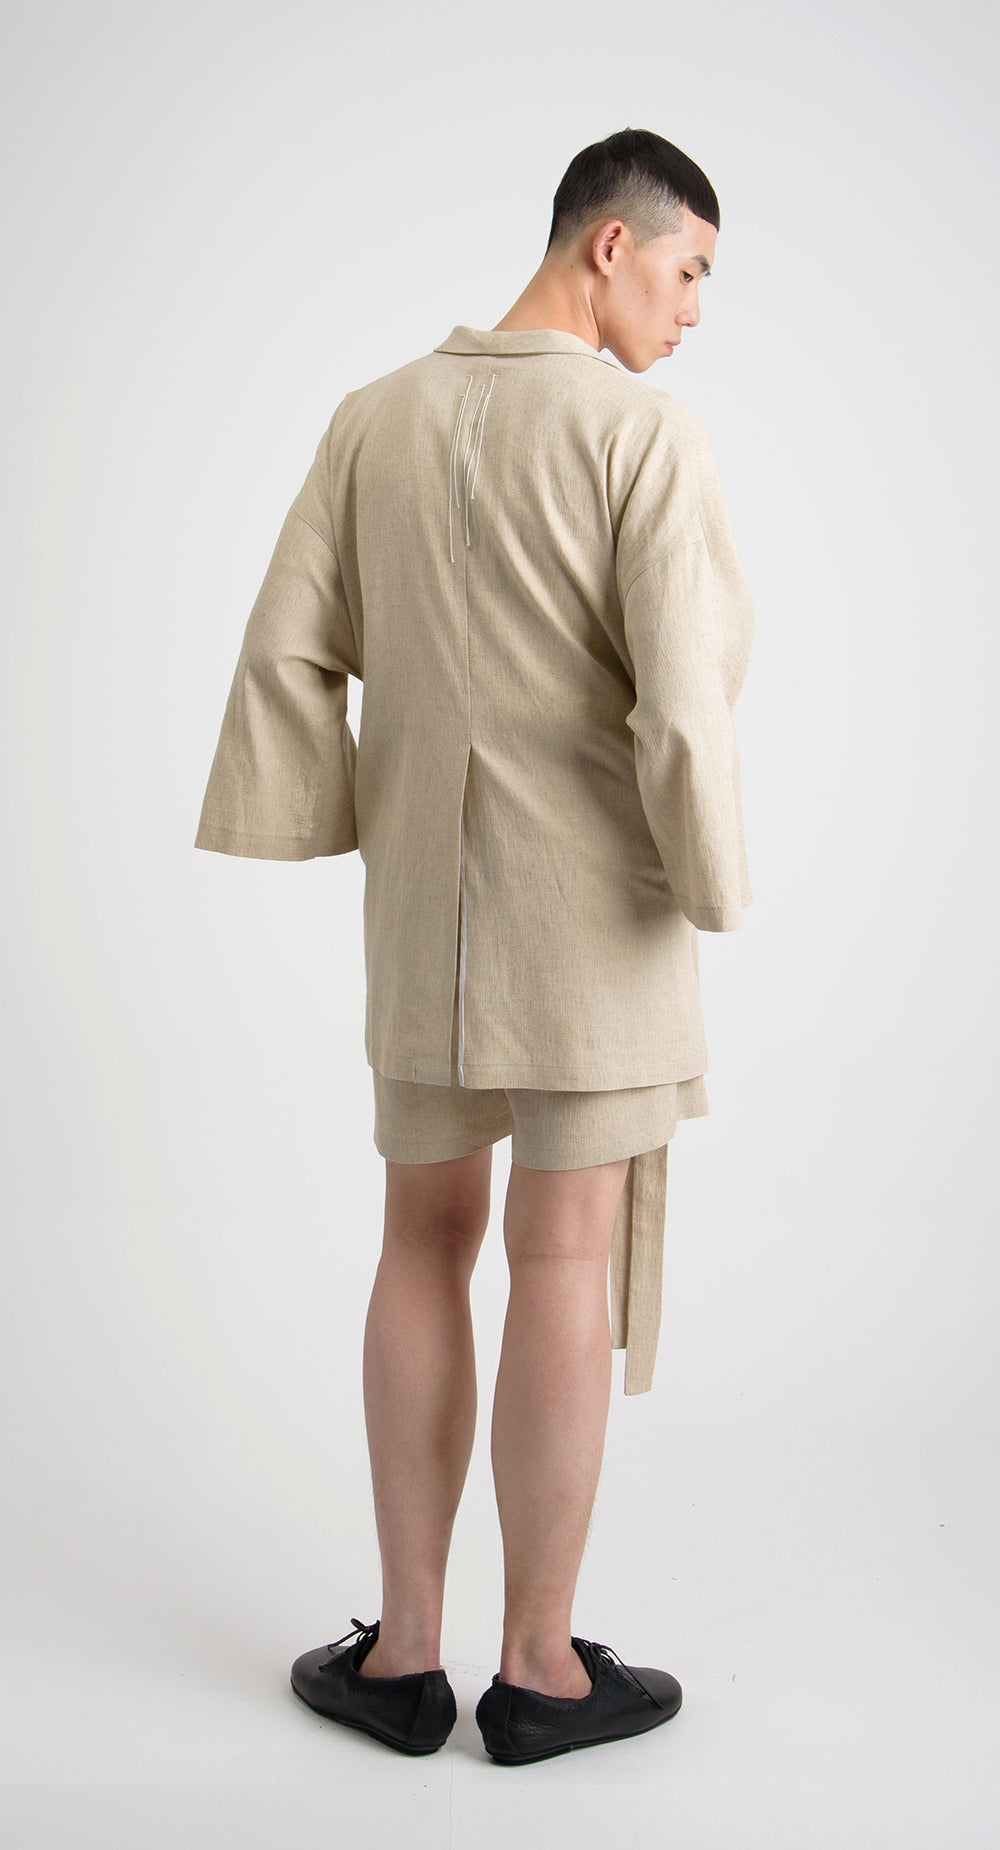 Shawl Collar Linen Jacket BE